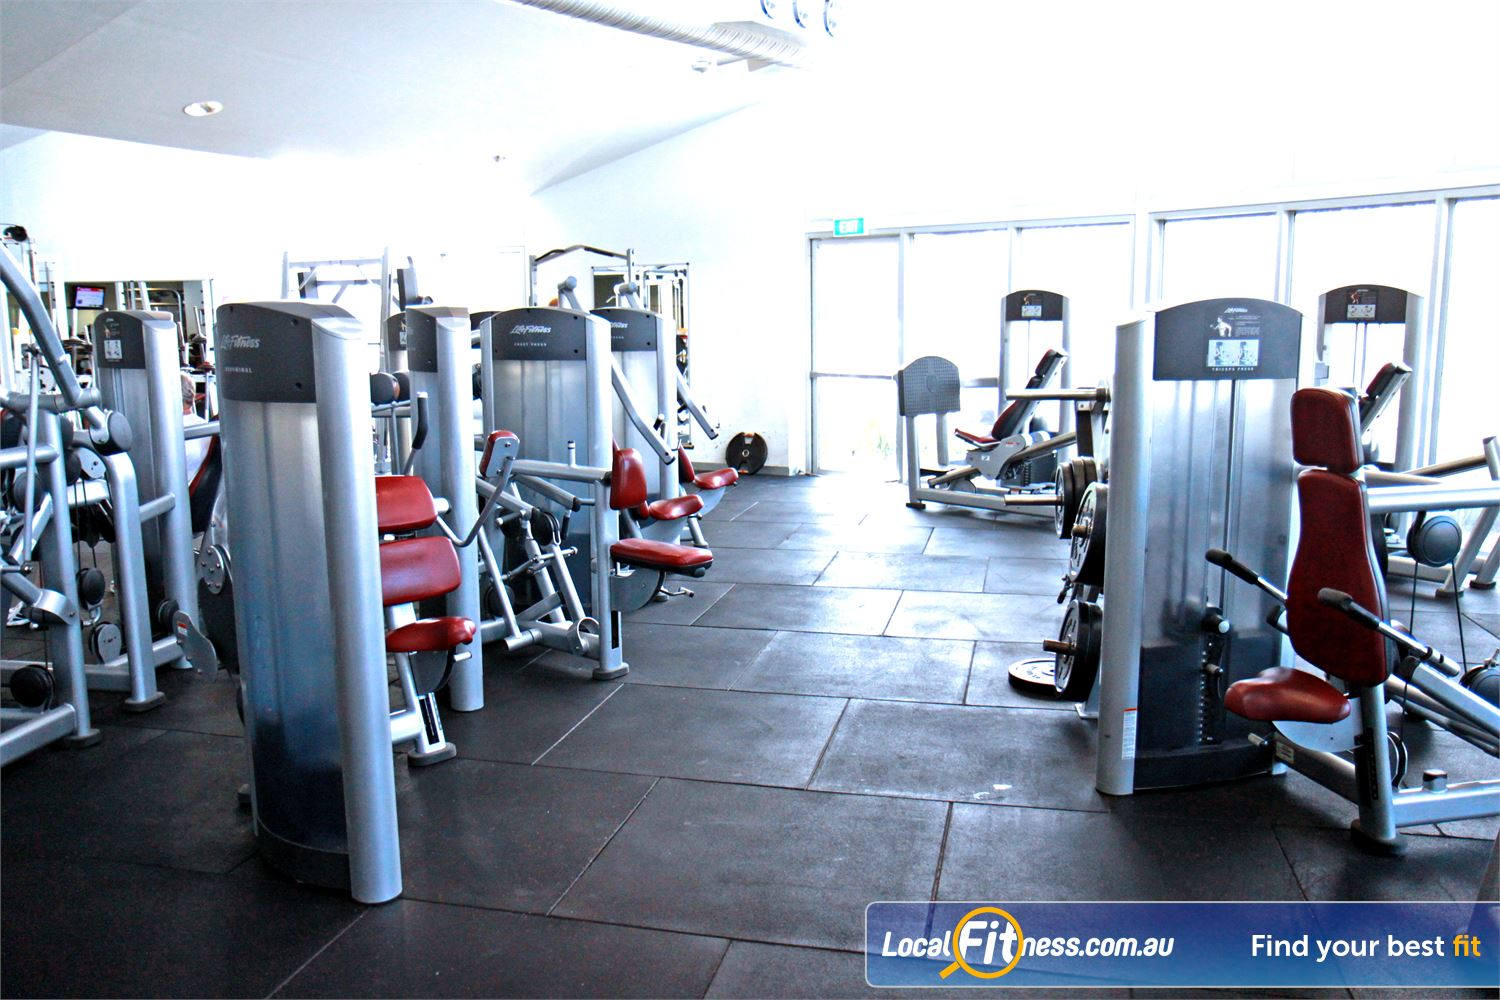 Ascot Vale Leisure Centre Near Moonee Ponds The latest resistance machines to help tone and strengthen your body.